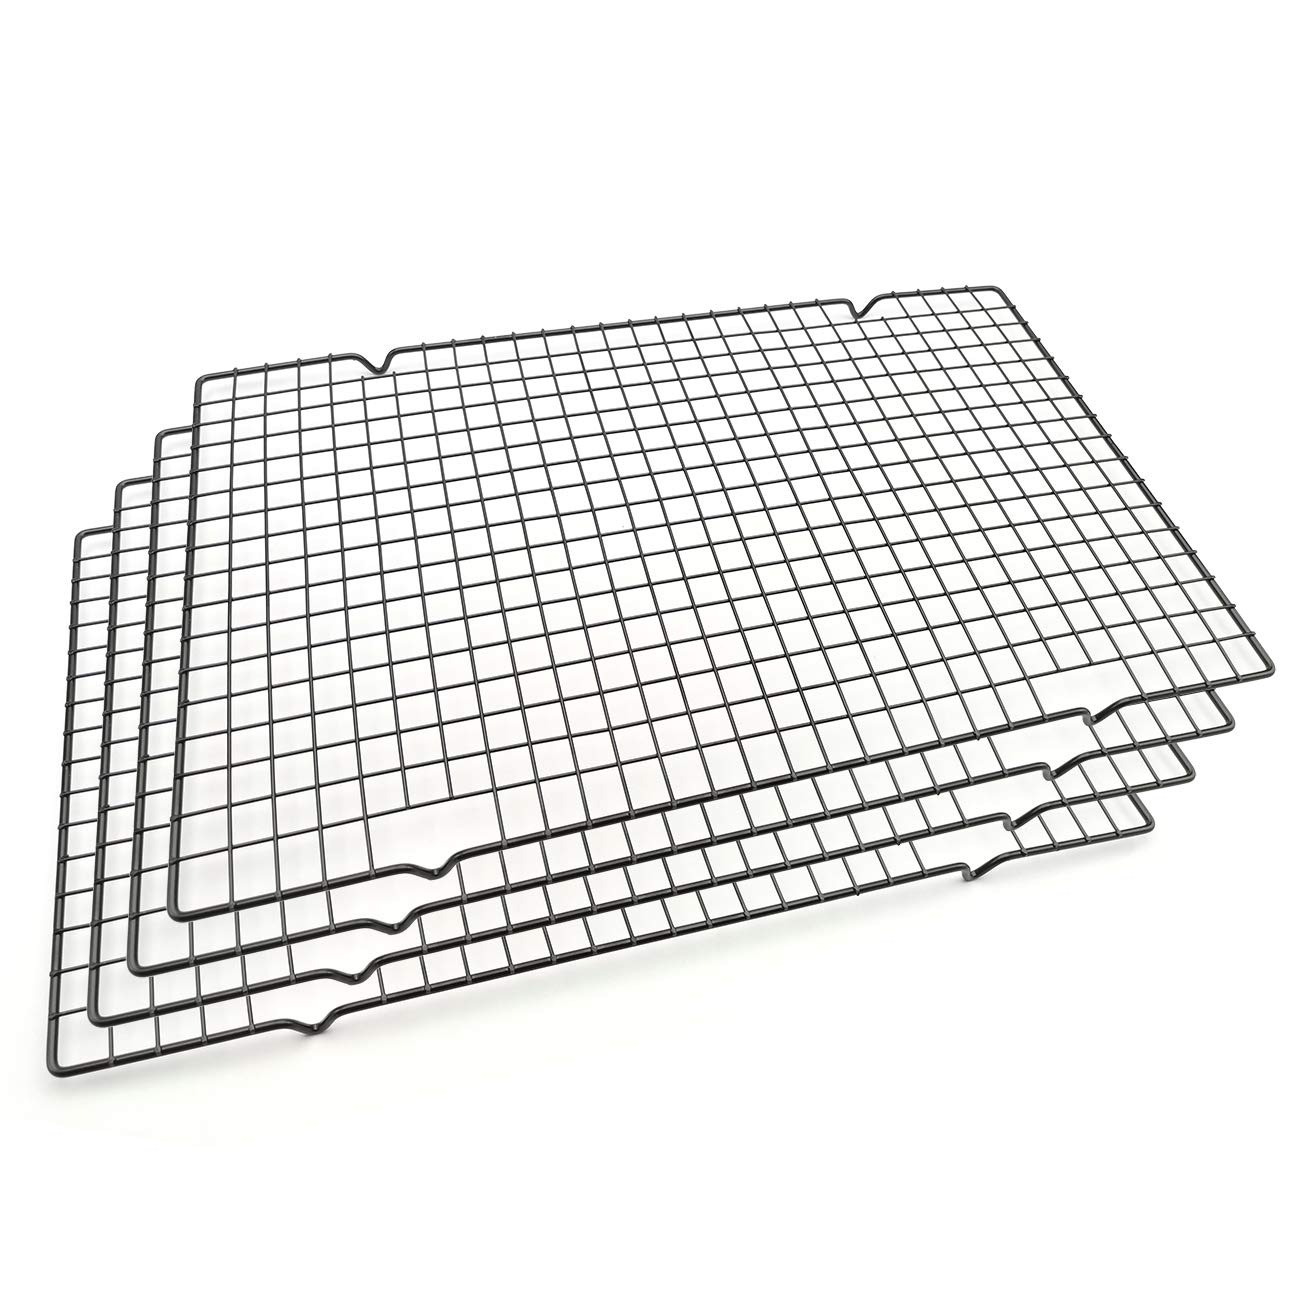 Baking Rack Cooling Rack,Size 16''x 10'' - Cool Cookies Cakes Breads - Heavy Duty Commercial Quality Wire Rack (4 pack)